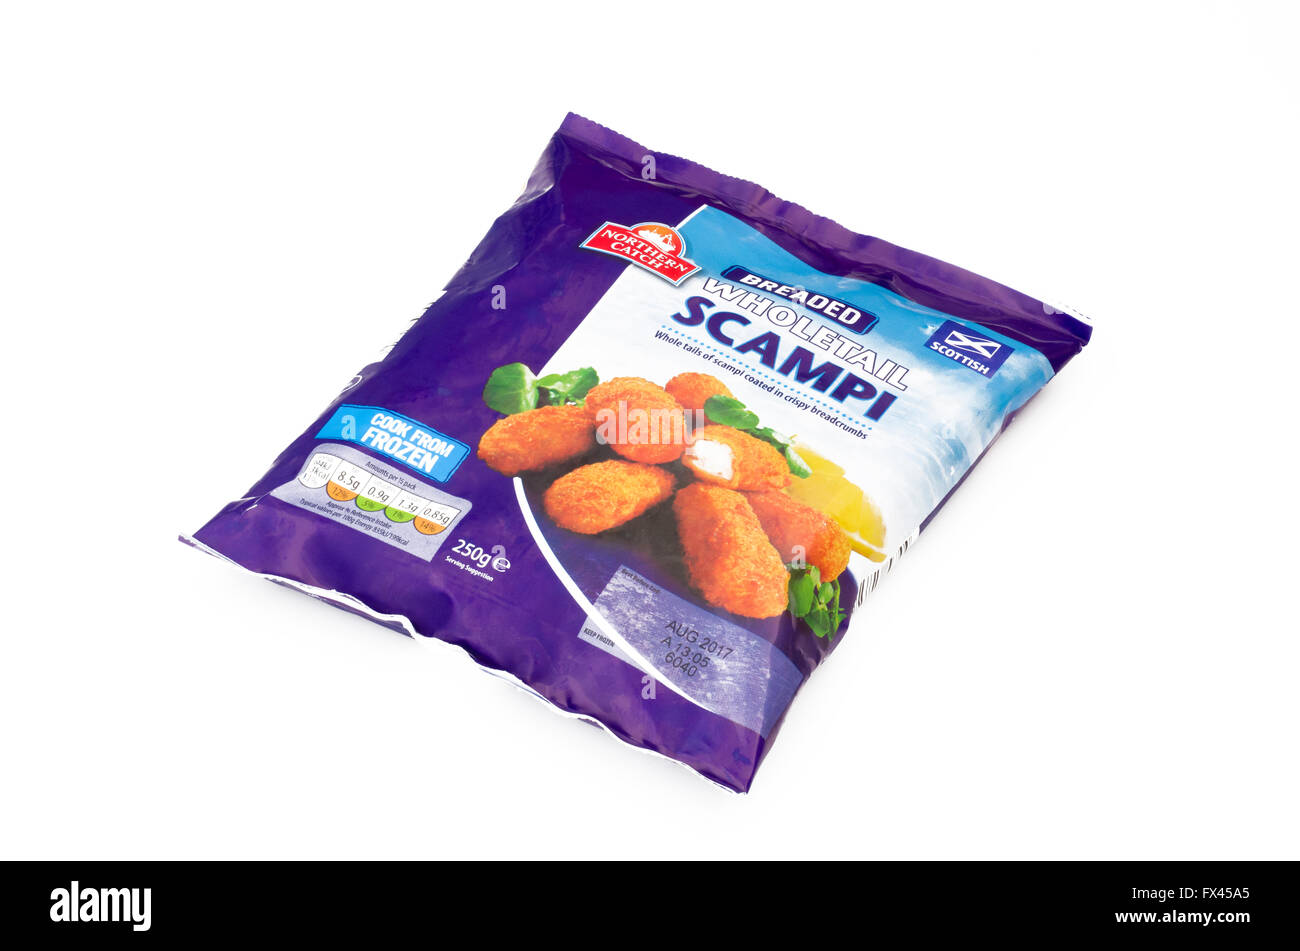 Packet of Breaded Scottish Wholetail Scampi on a White Background - Stock Image